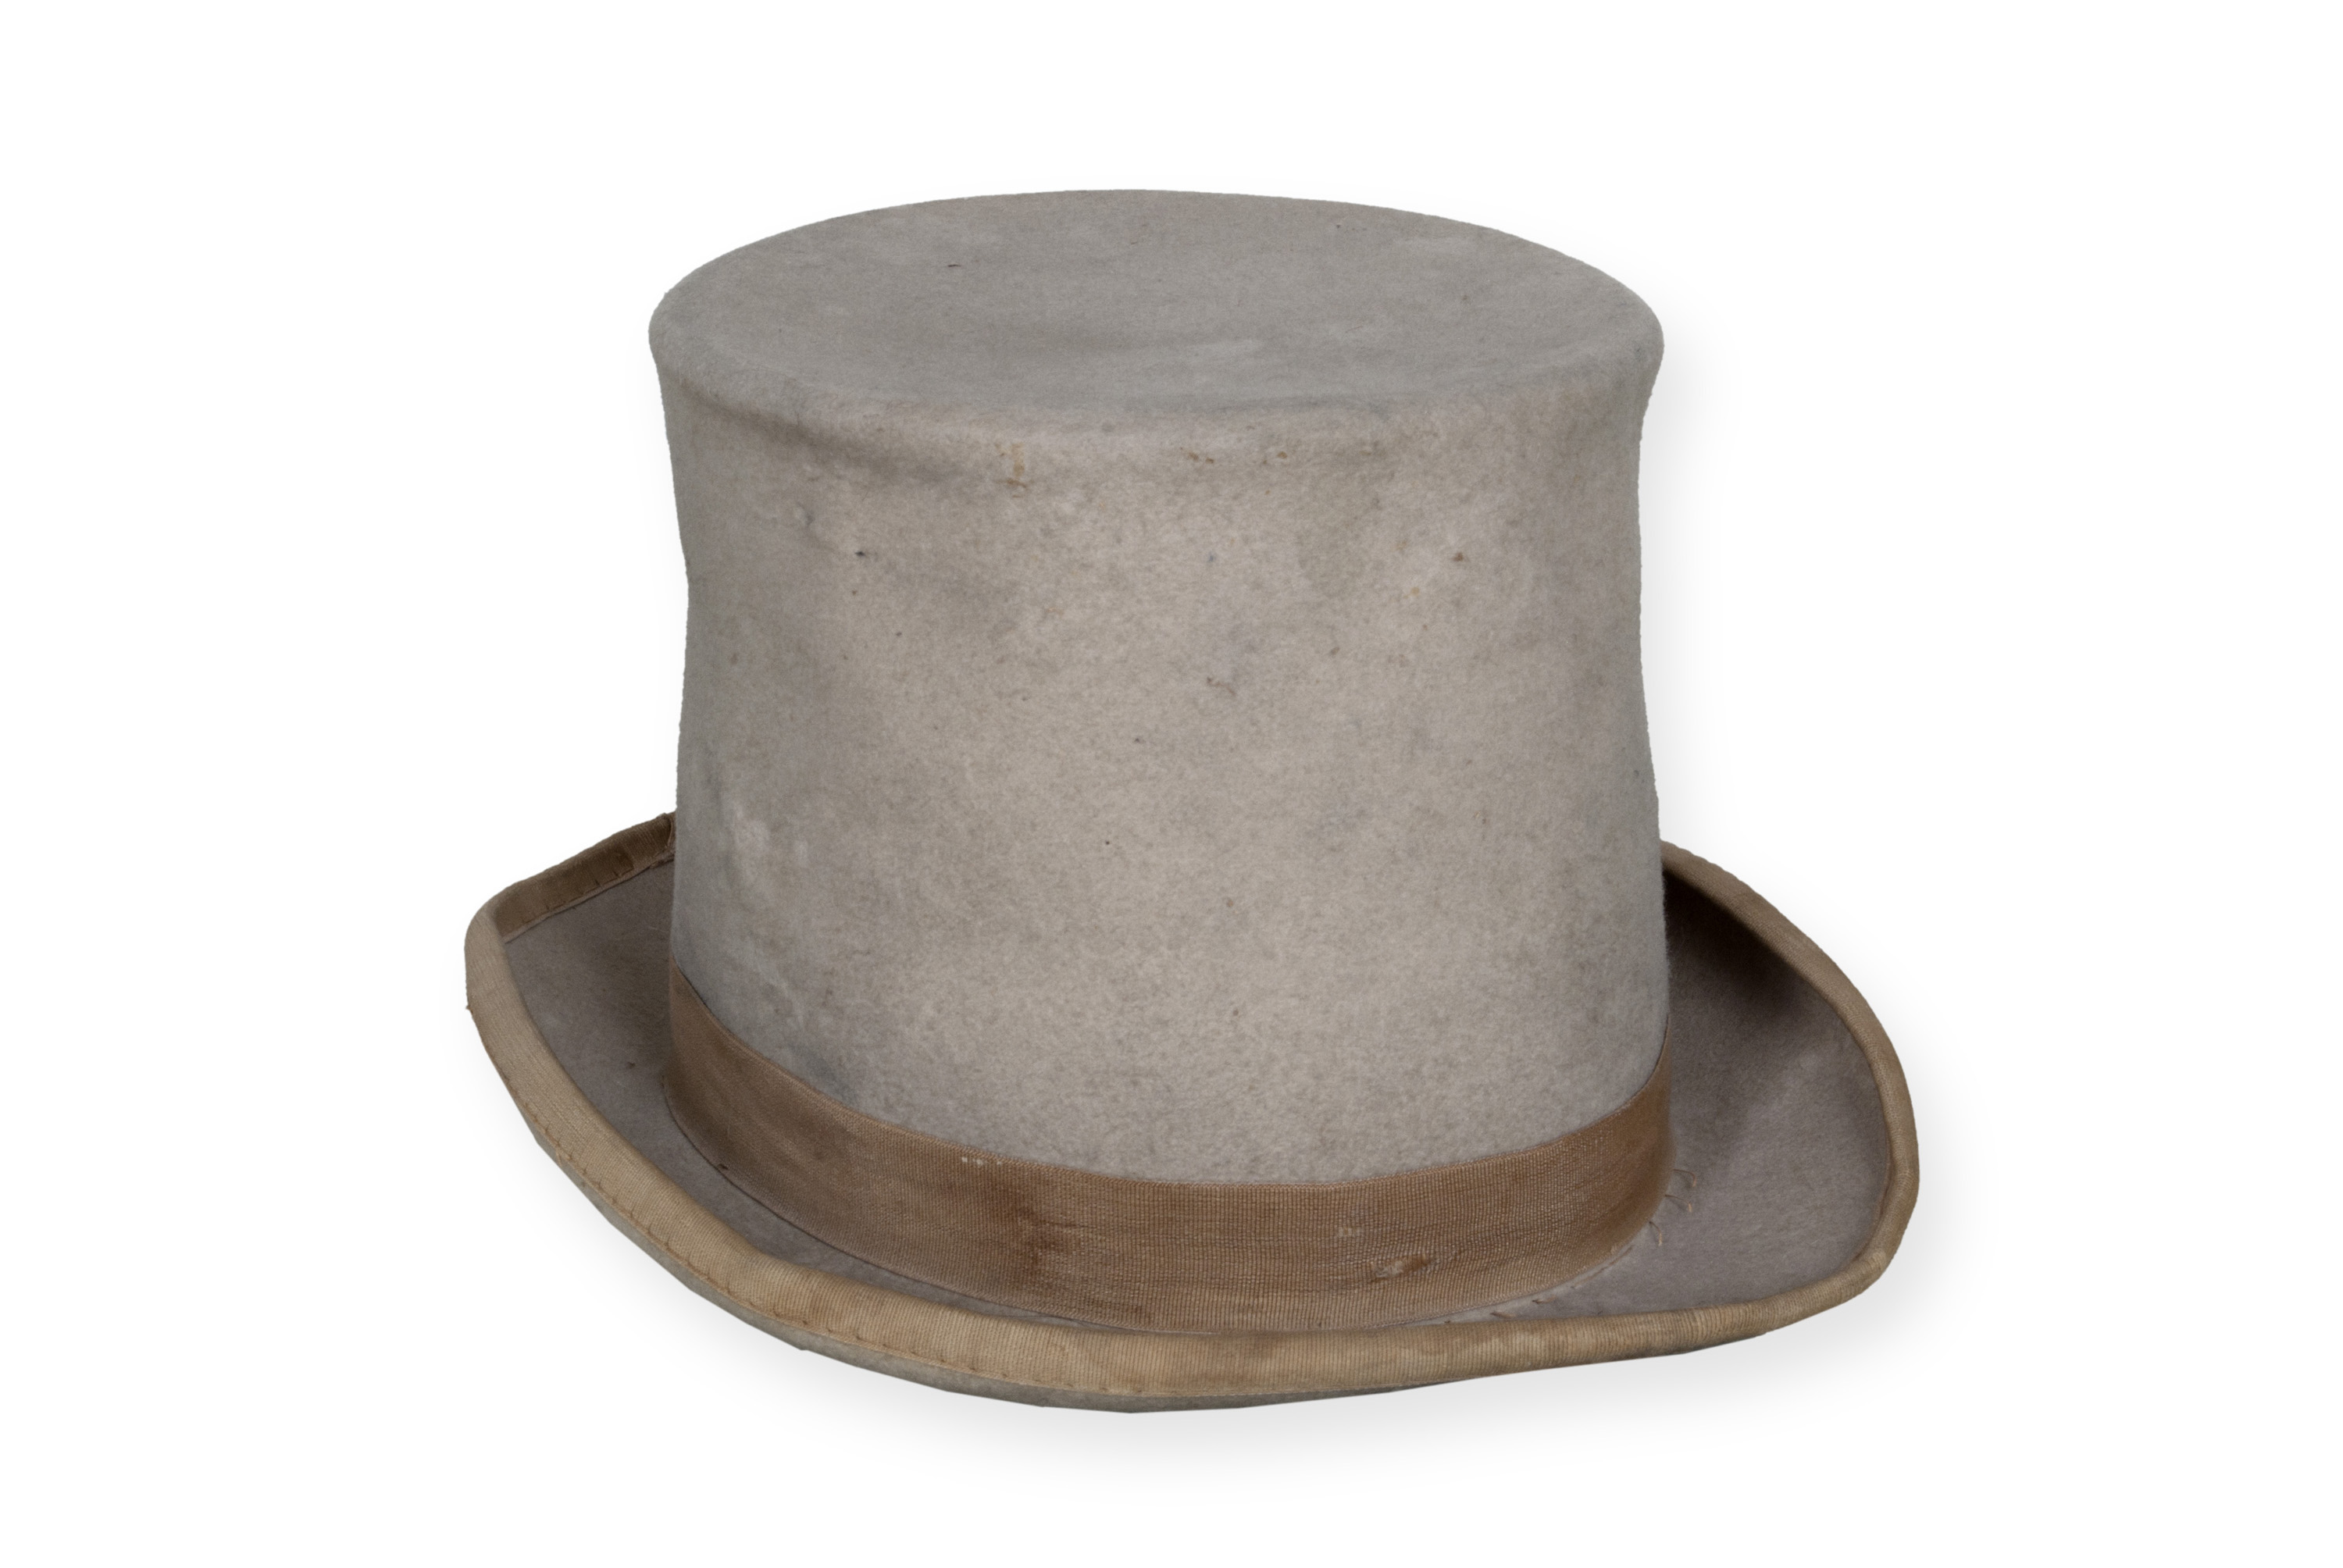 Hat from 1888 Benjamin Harrison presidential campaign